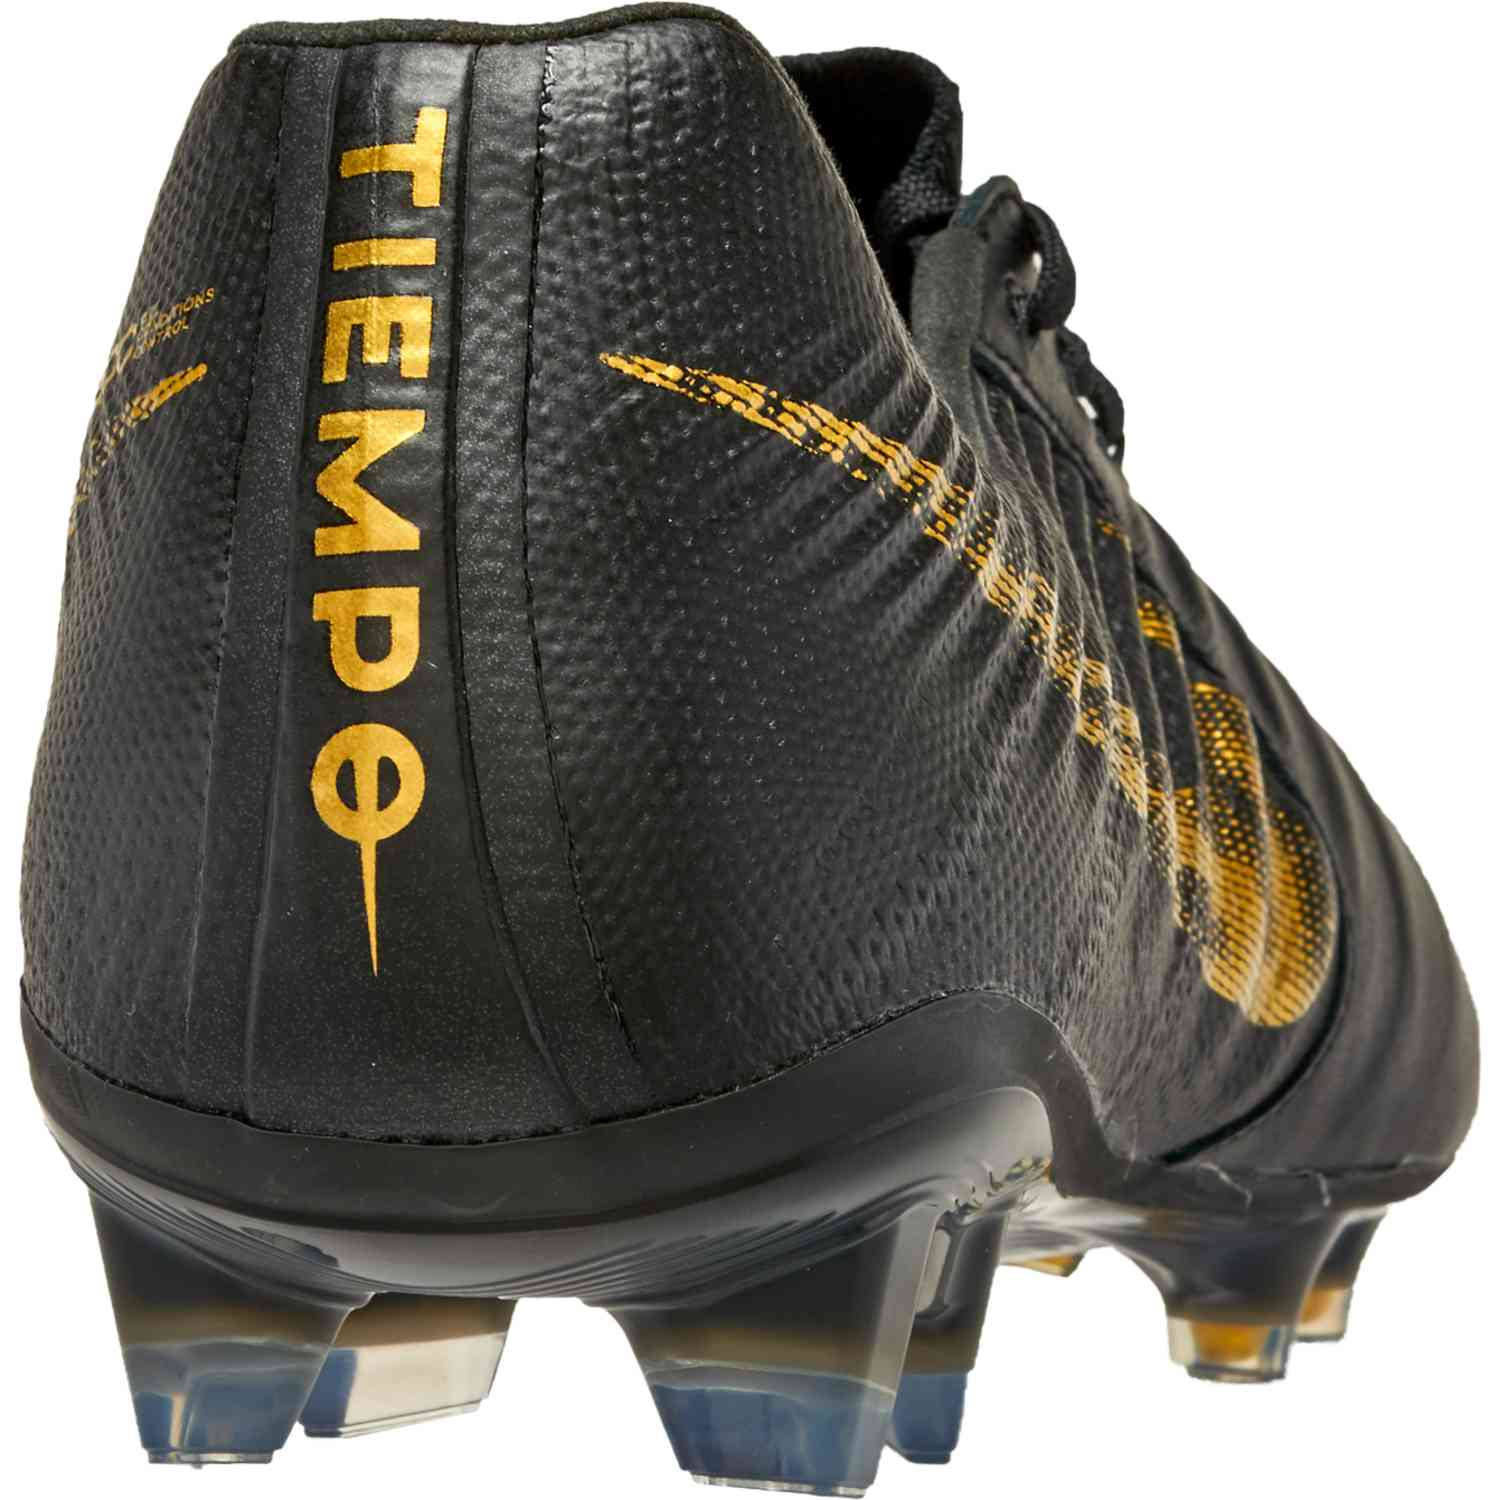 66873cdd5 Home   Shop By Brand   Nike Soccer   Nike Soccer Shoes   Nike Tiempo Legend  VII